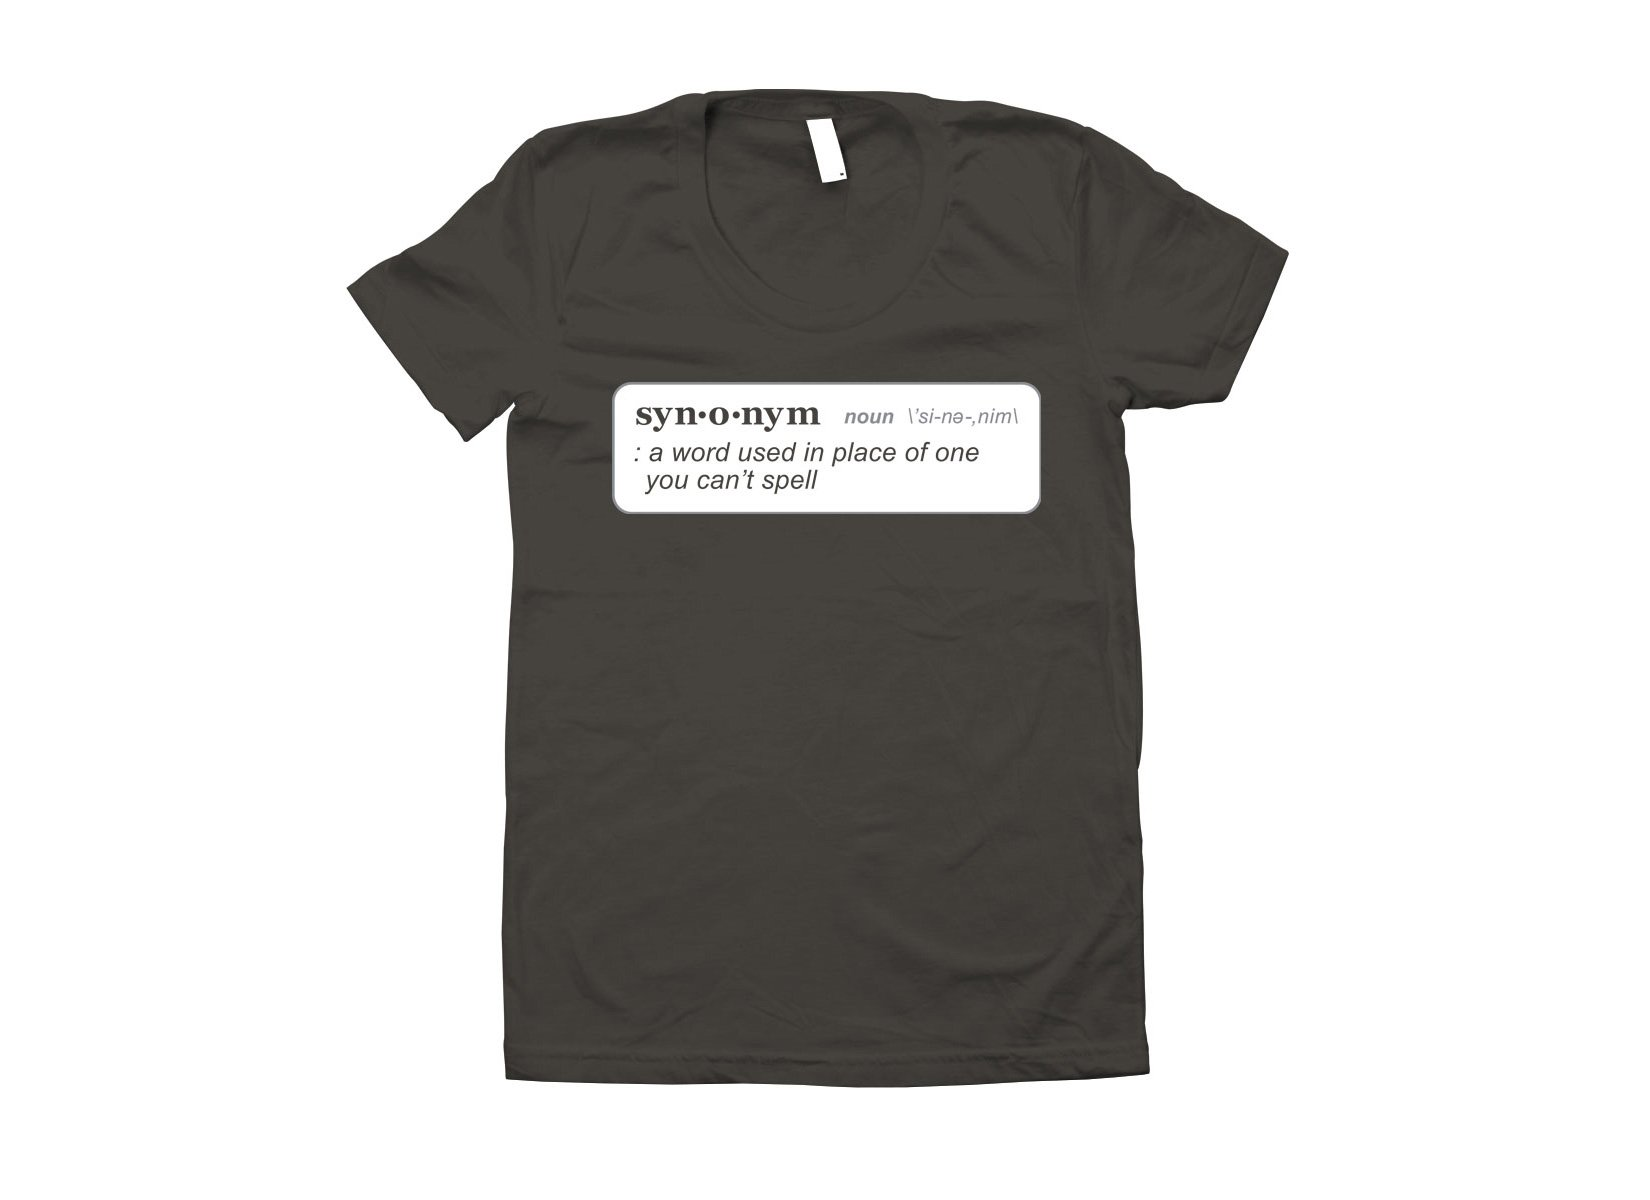 Synonym Definition on Juniors T-Shirt